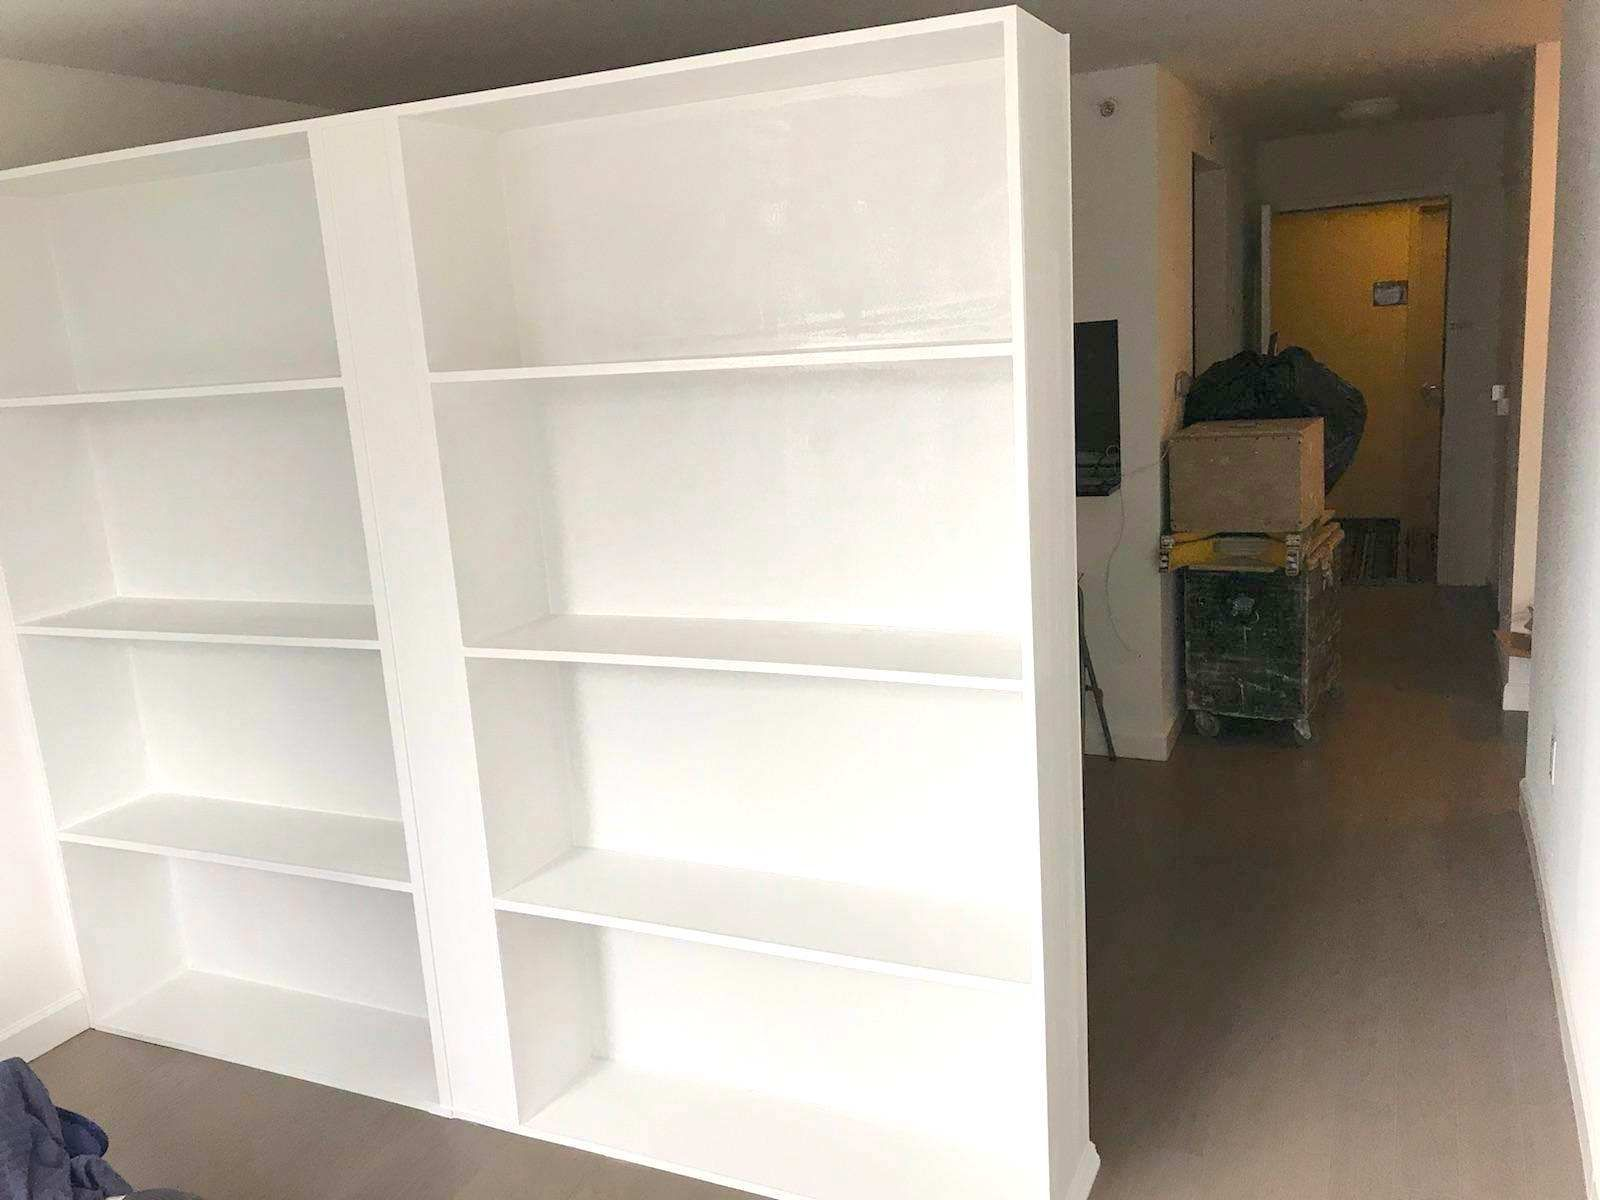 Freestanding Bookcase Partition Call Us For All Your Custom Room Partition And Storage Wall Inquiries 64 Freestanding Room Divider Closet Remodel Walls Room